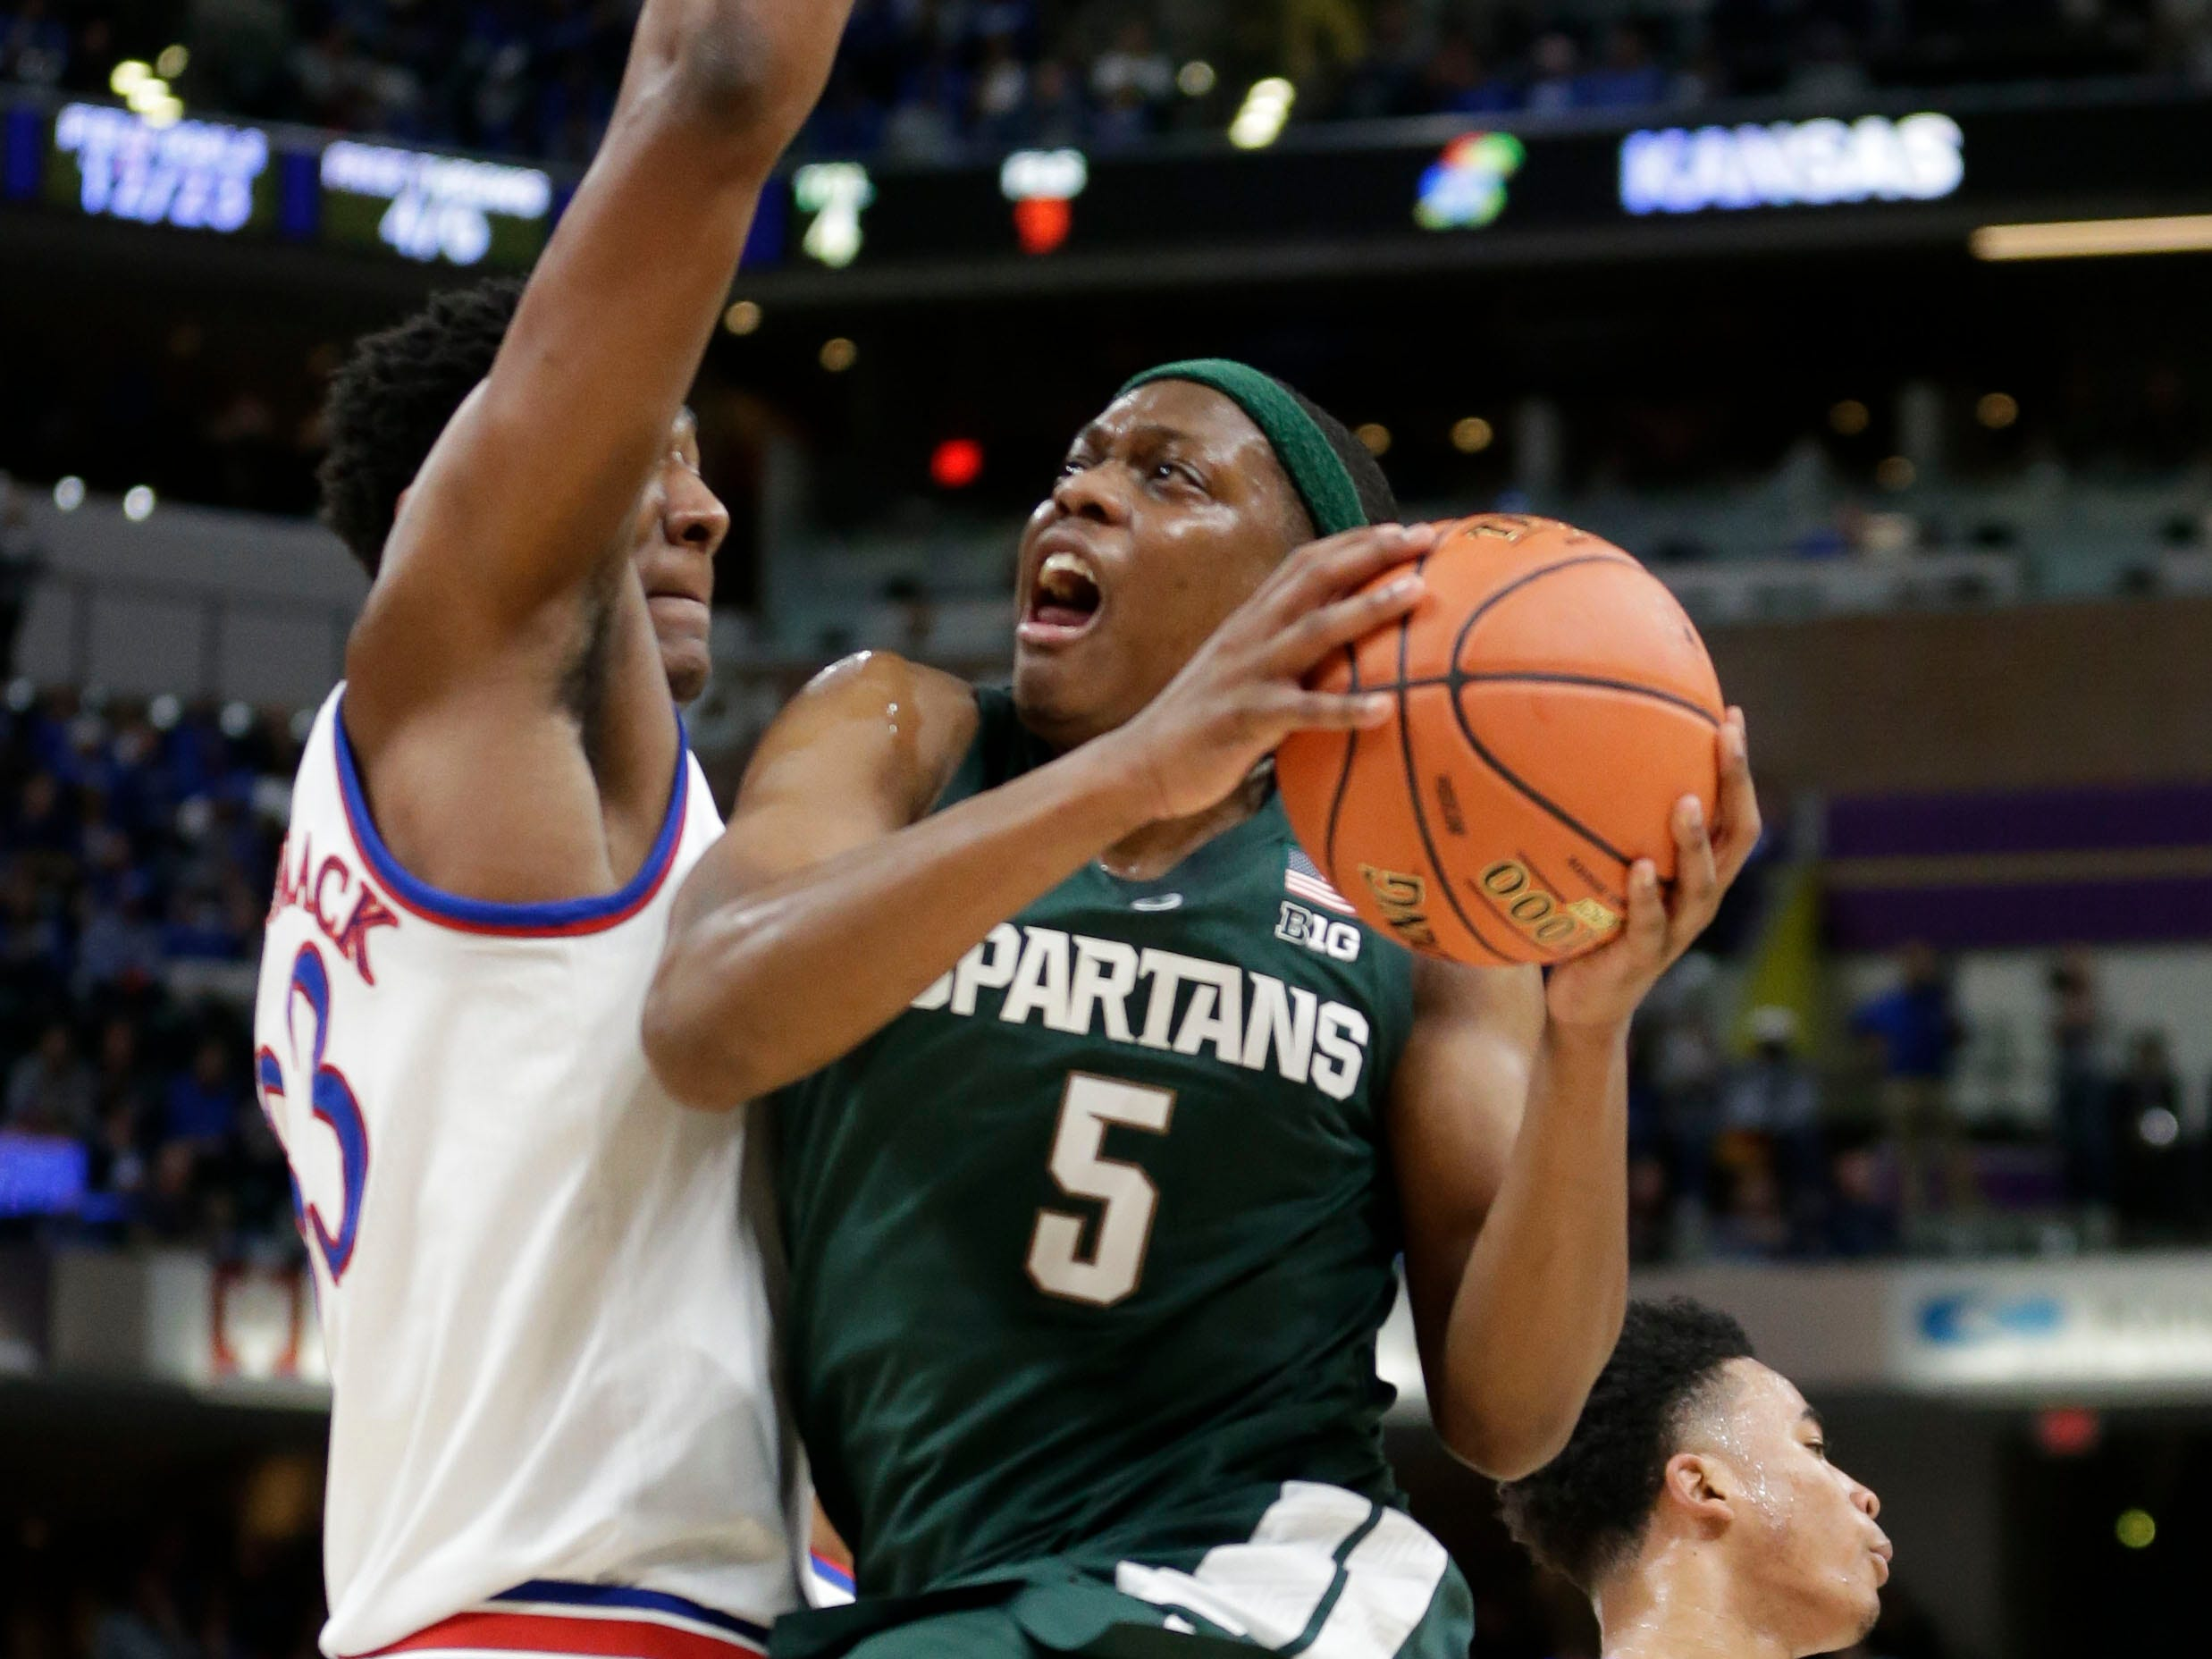 Michigan State guard Cassius Winston (5) tries to shoot around Kansas forward David McCormack (33) in the first half of an NCAA college basketball game at the Champions Classic in Indianapolis on Tuesday, Nov. 6, 2018.